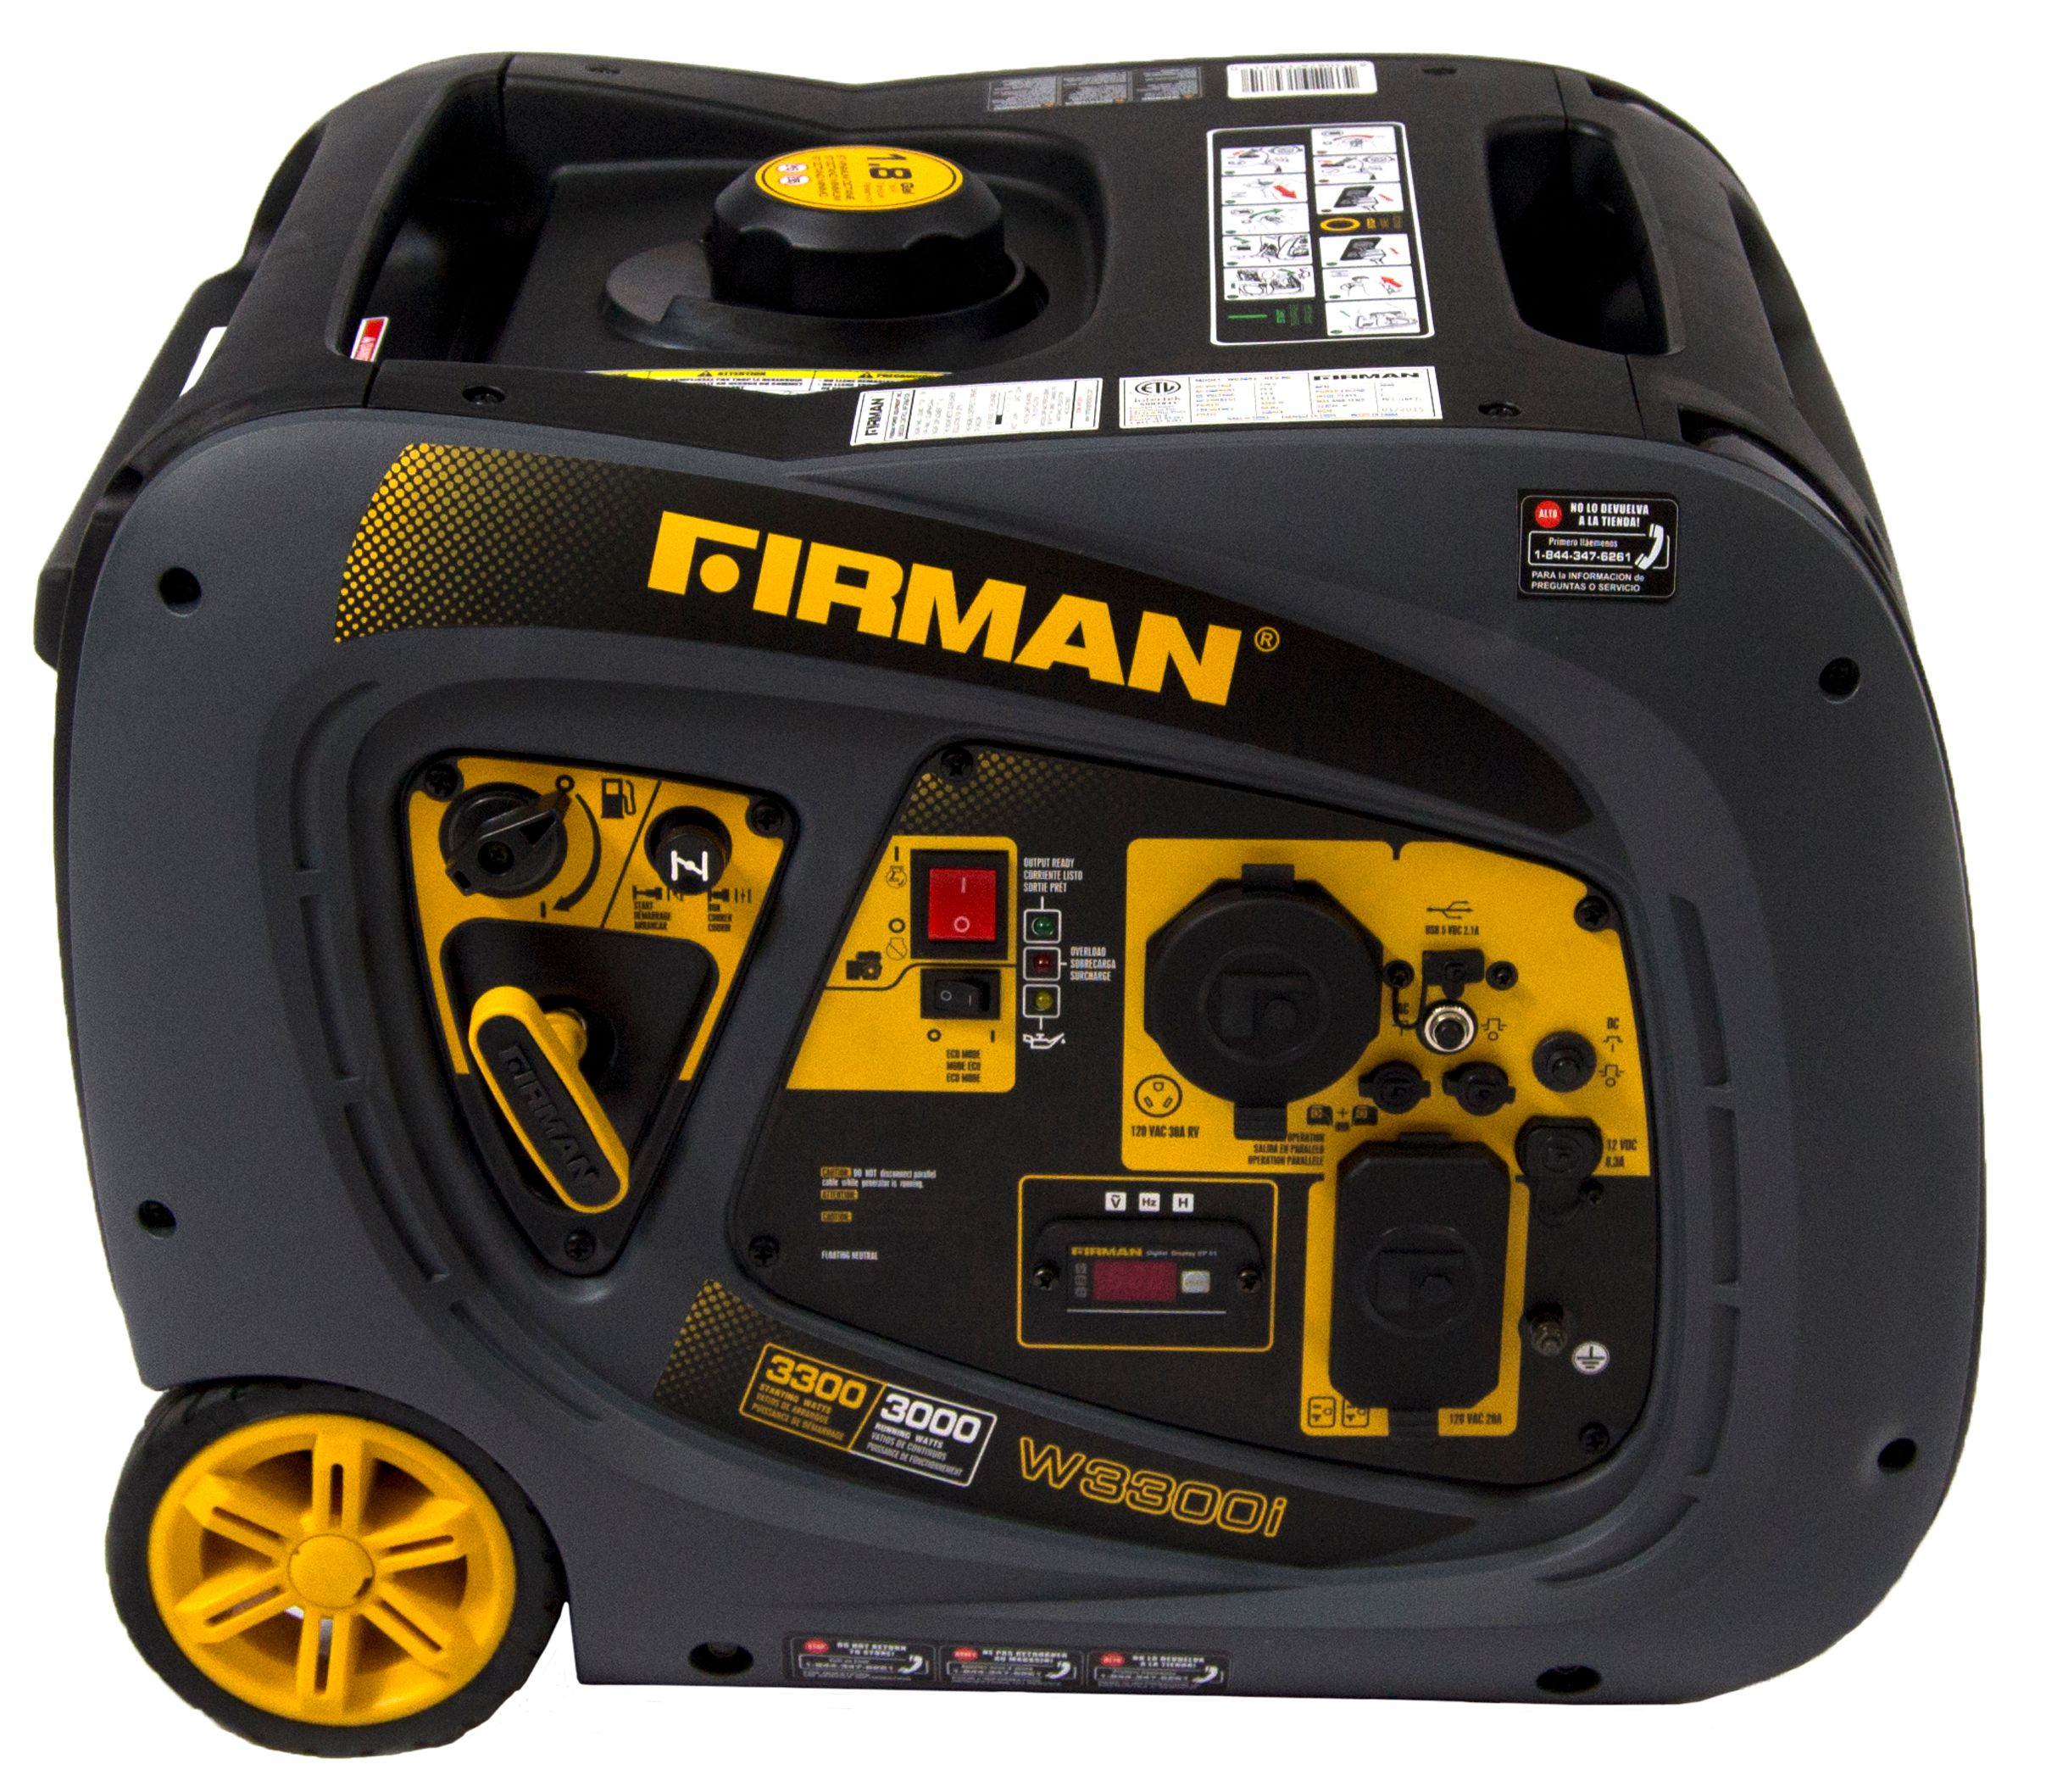 Firman W03081 3,300 W Gasoline Powered Inverter Generator